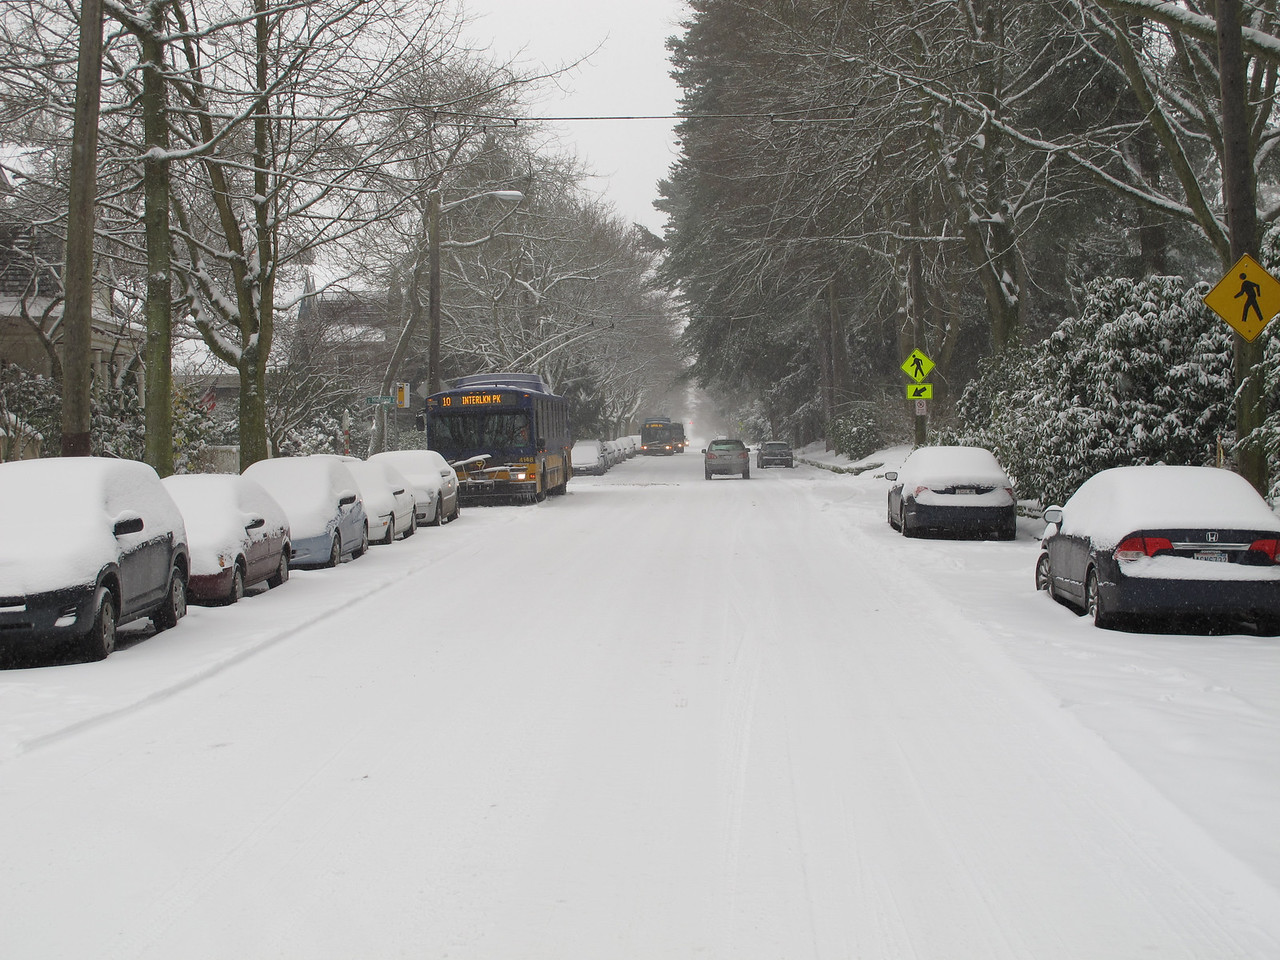 My street. The busses were backed up because a bus spun out down the street.